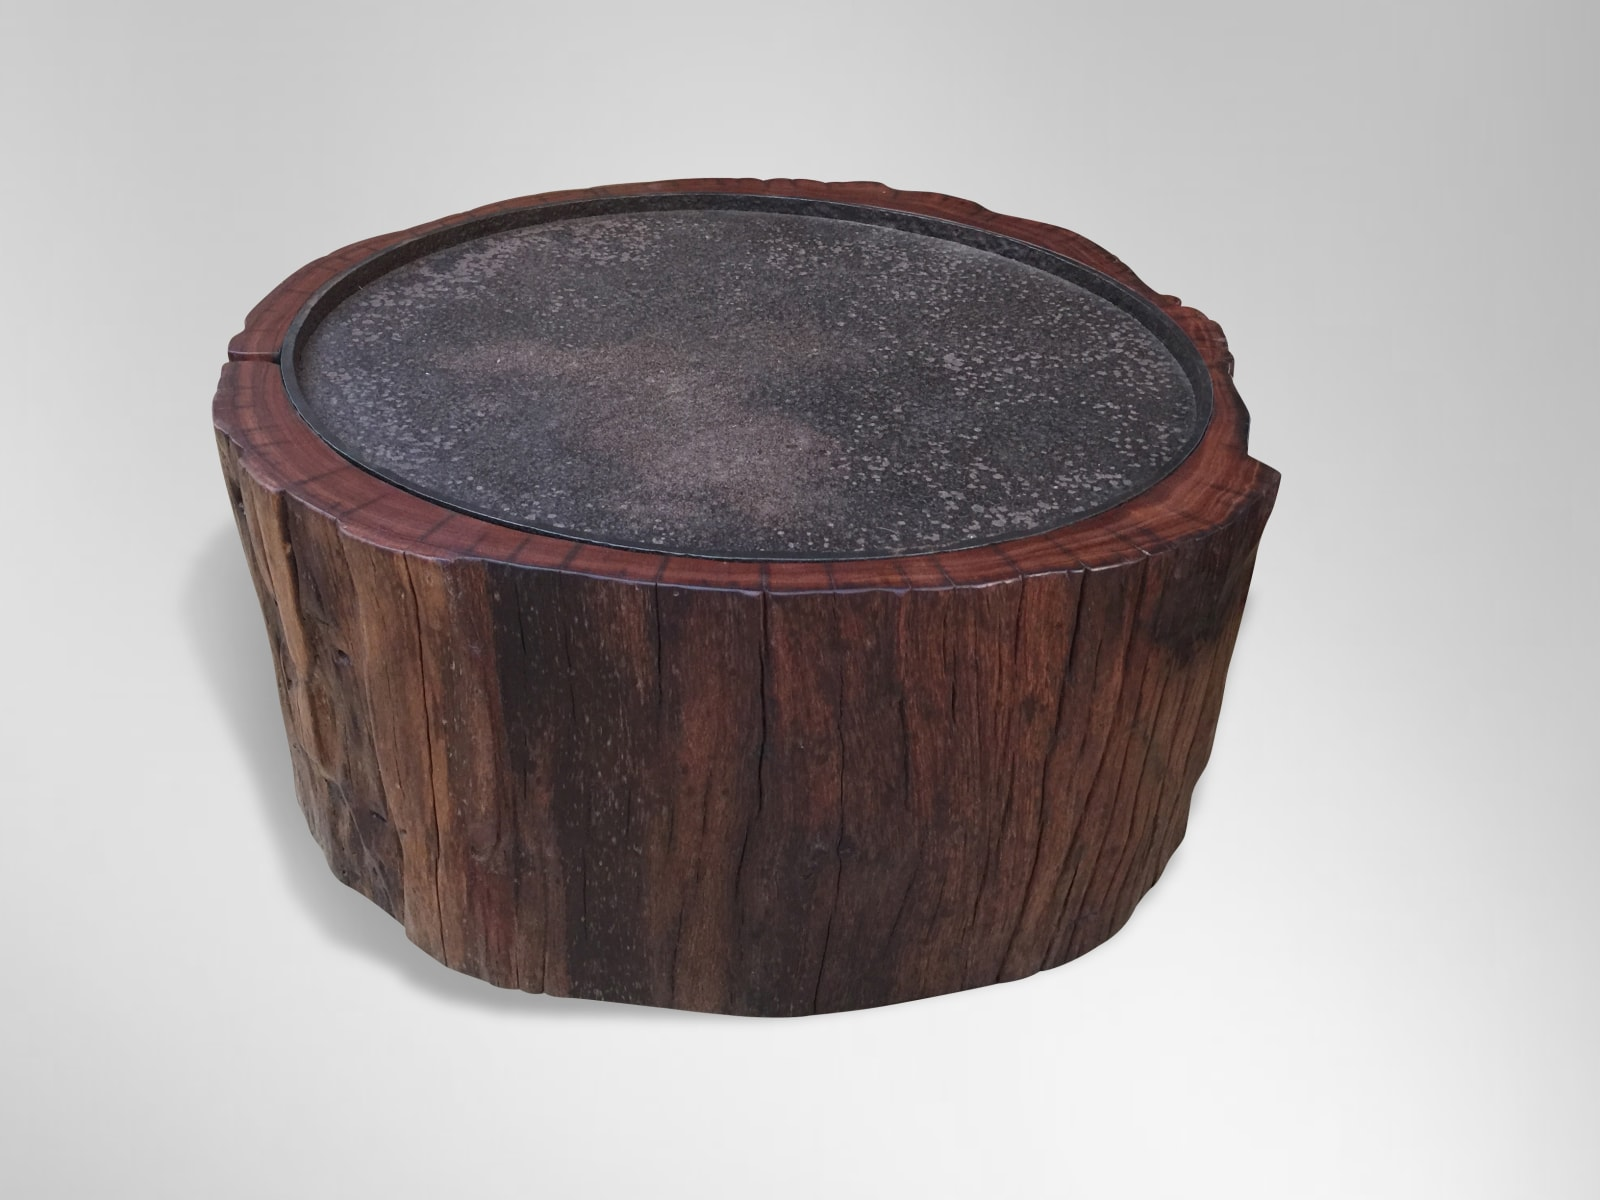 Coffee Table Ironwood trunk section from Borneo with inset salvaged cast iron top